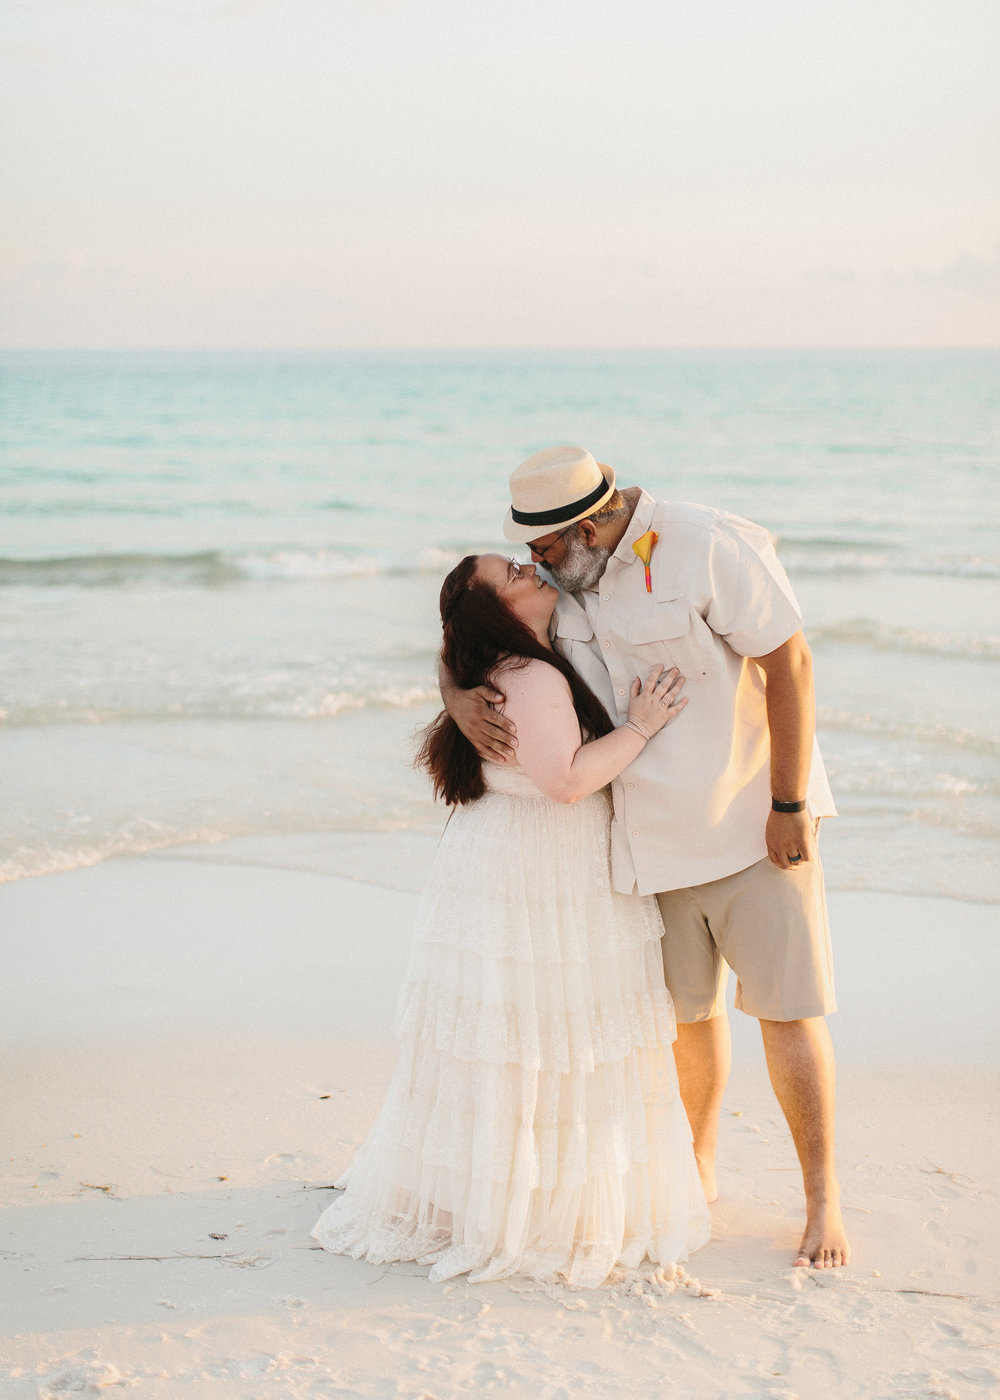 destin_sunset_beach_elopement_intimate_wedding_photographer_florida_documentary_1266.jpg